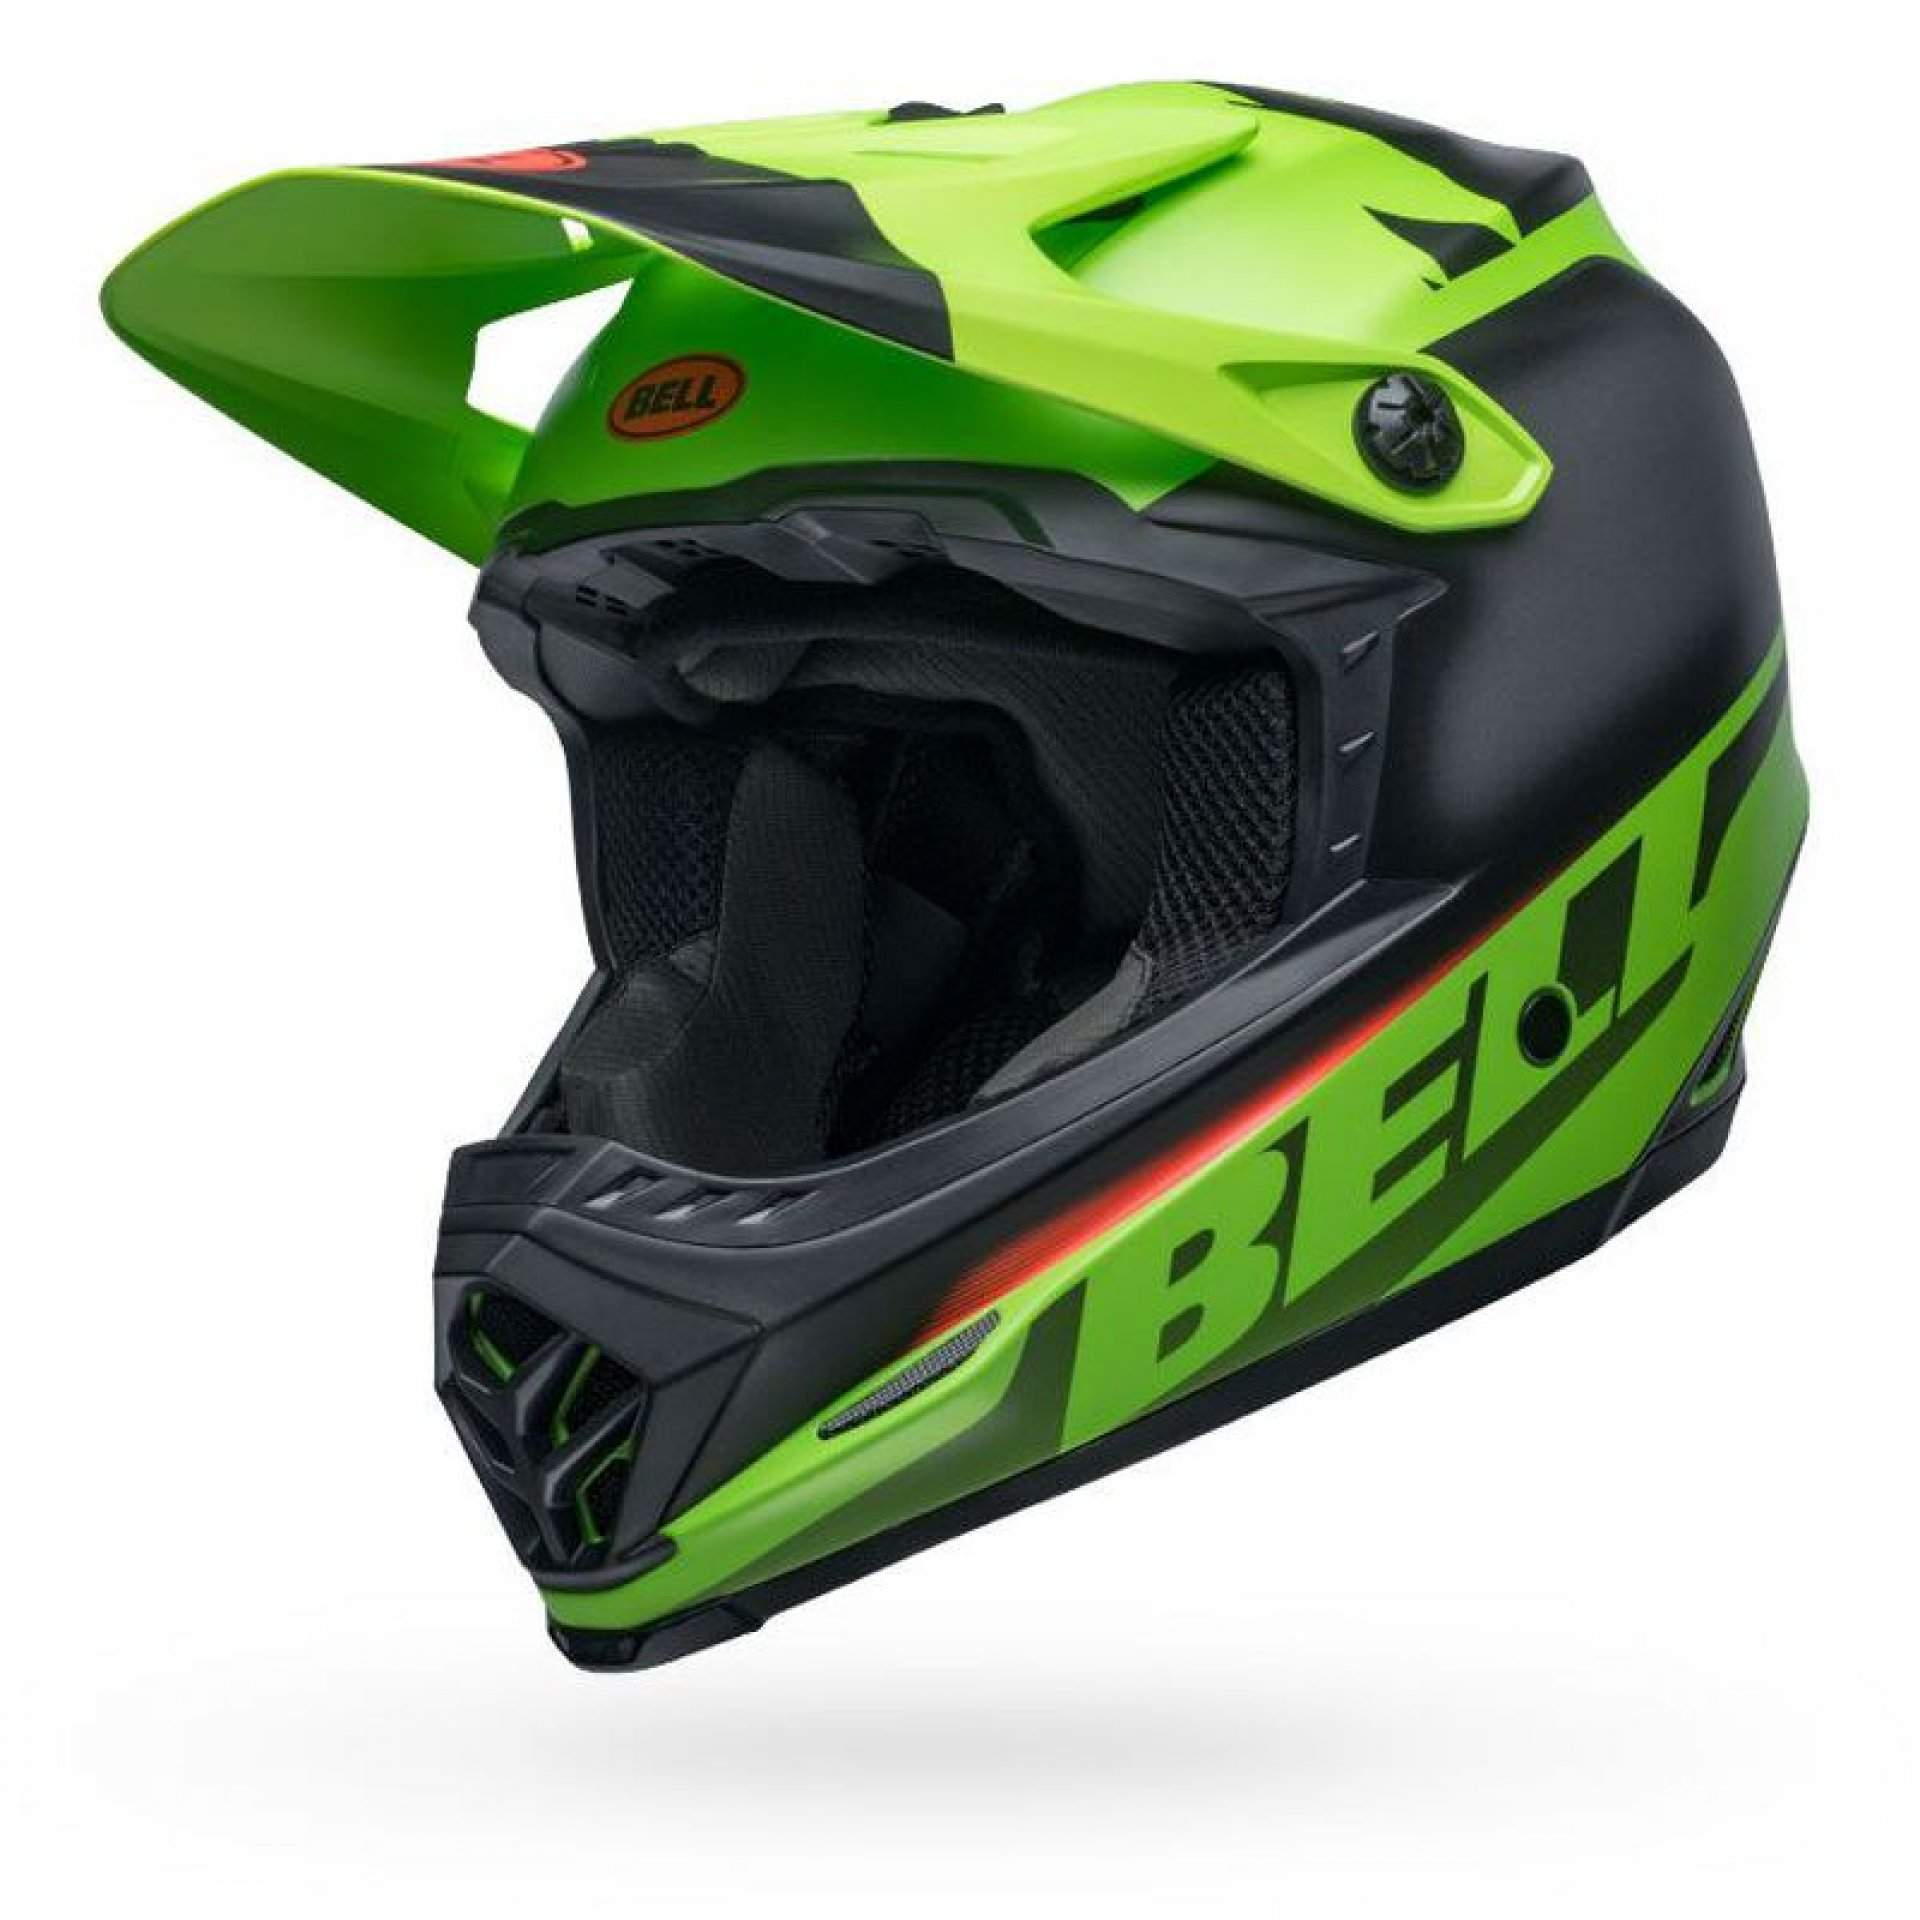 KASK ROWEROWY BELL FULL-9 FUSION MIPS MATTE GREEN|BLACK|CRIMSON 3